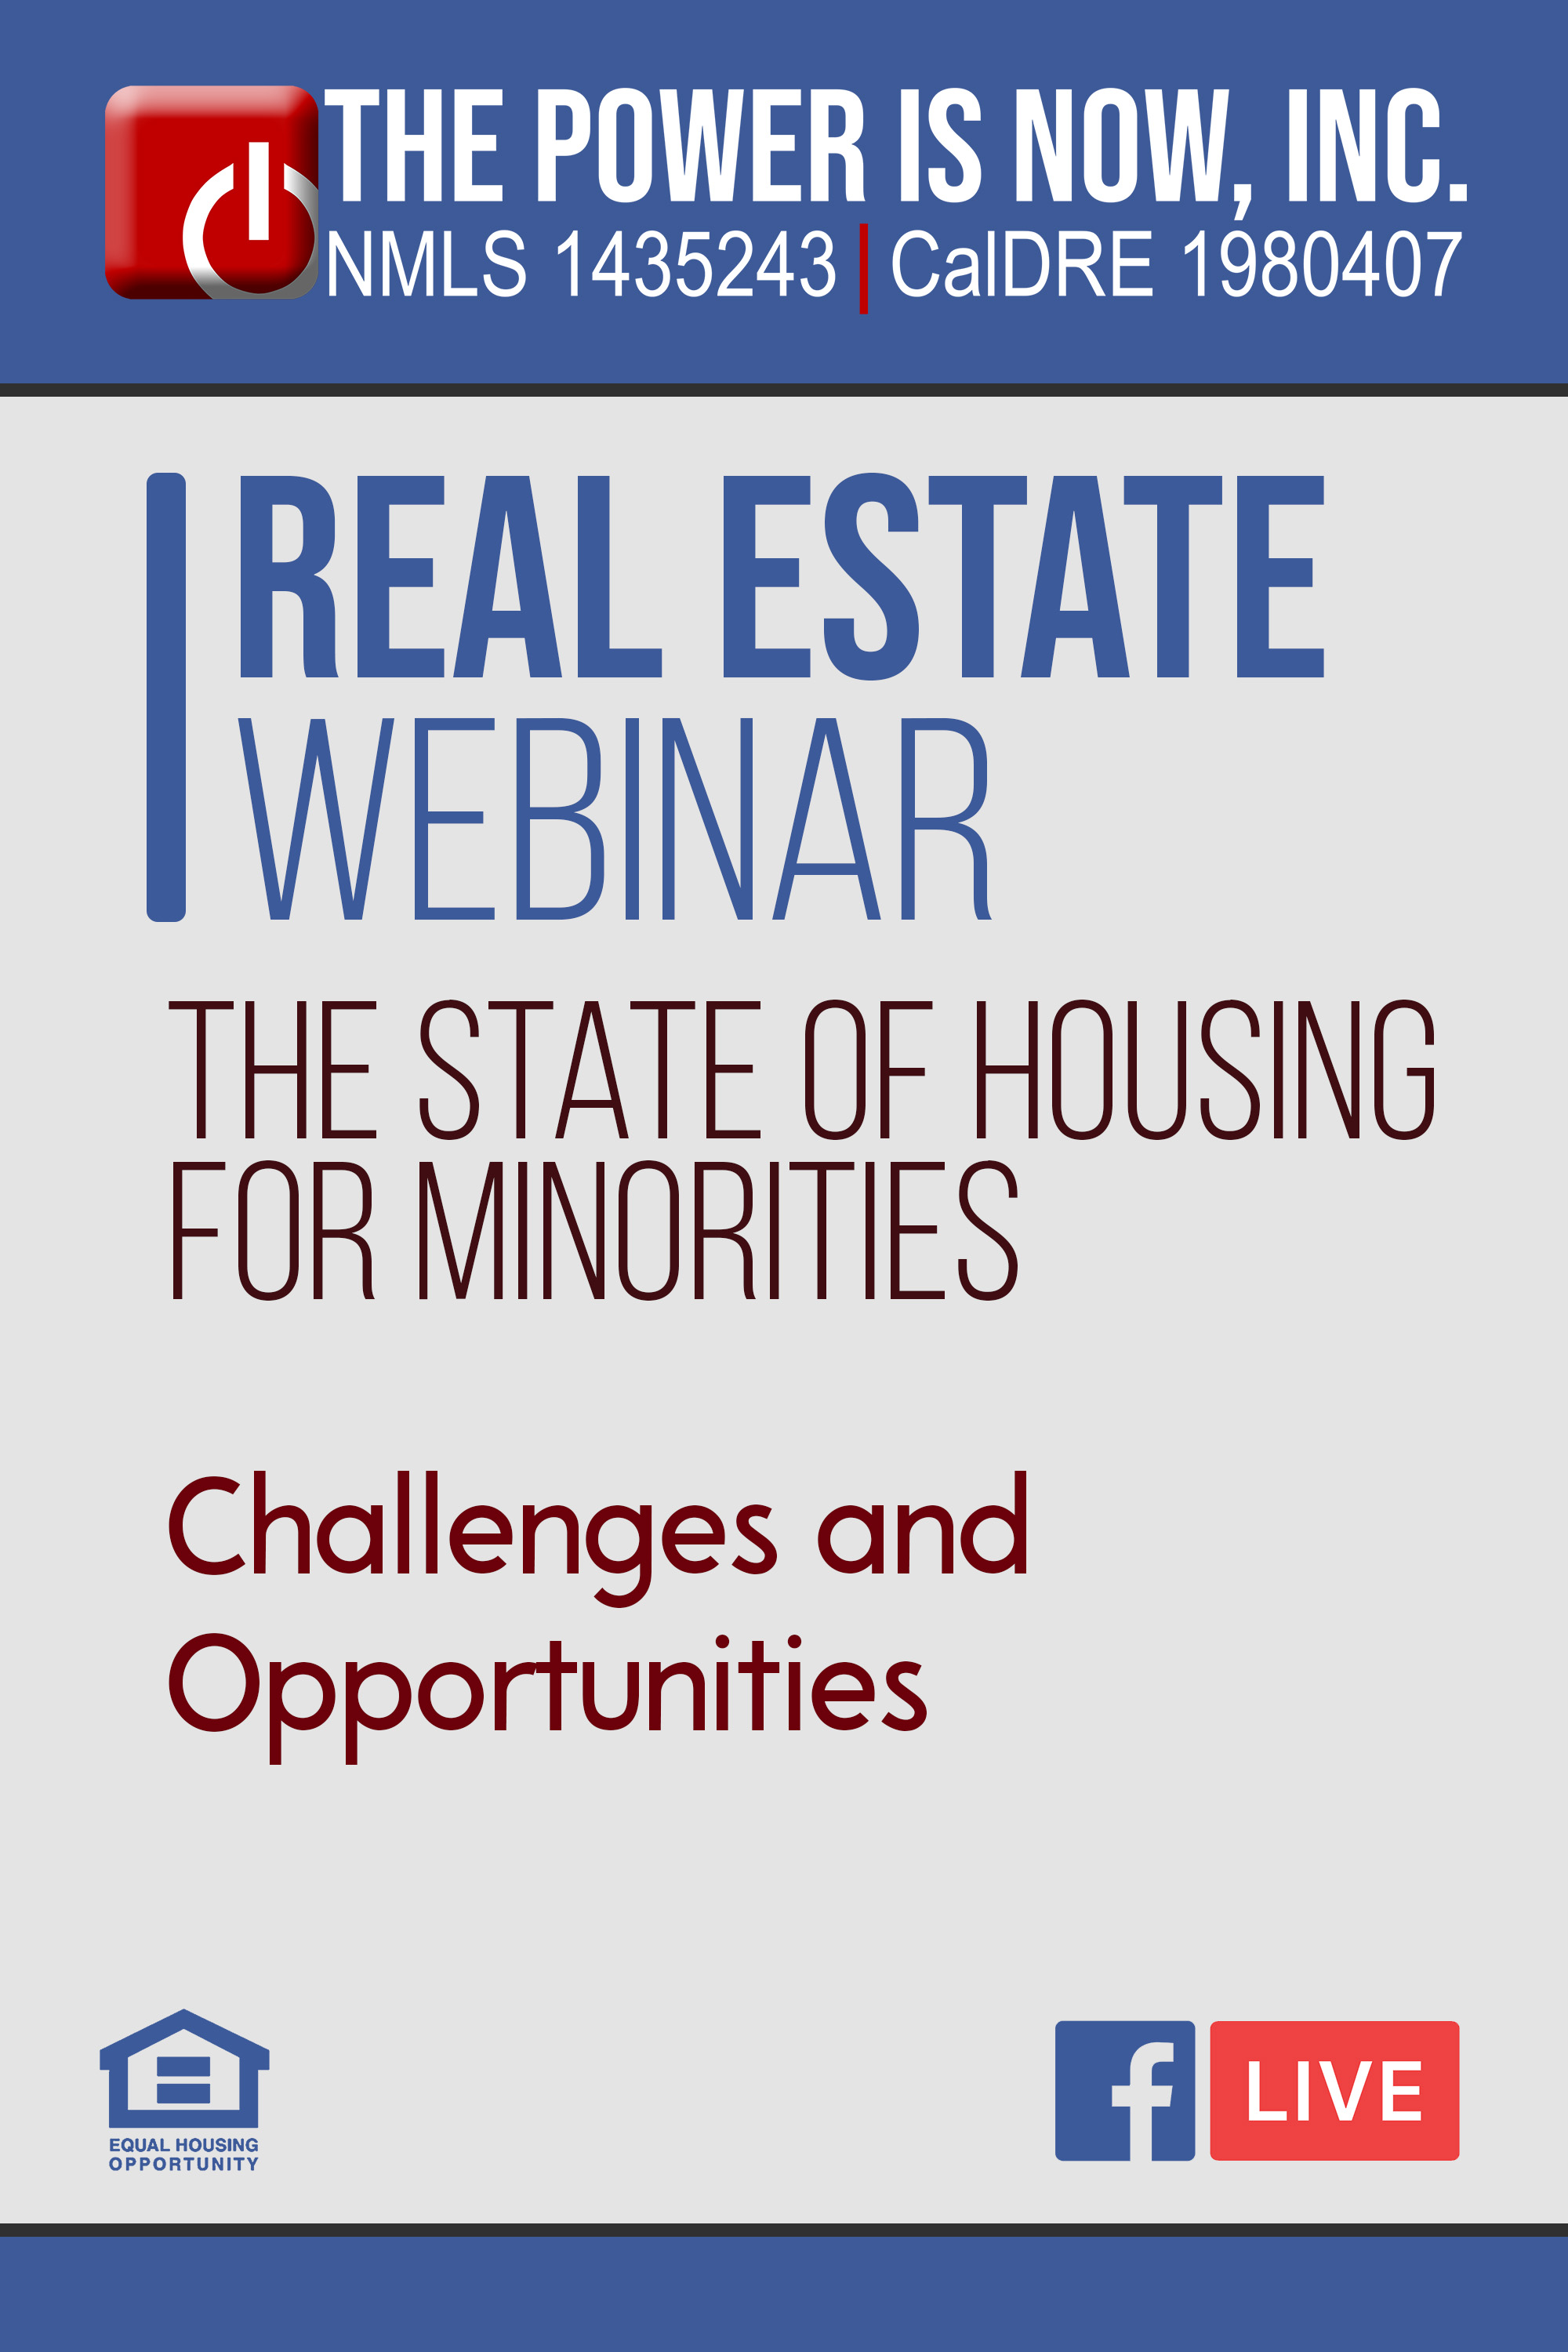 The State of Housing for Minorities – Challenges and Opportunities